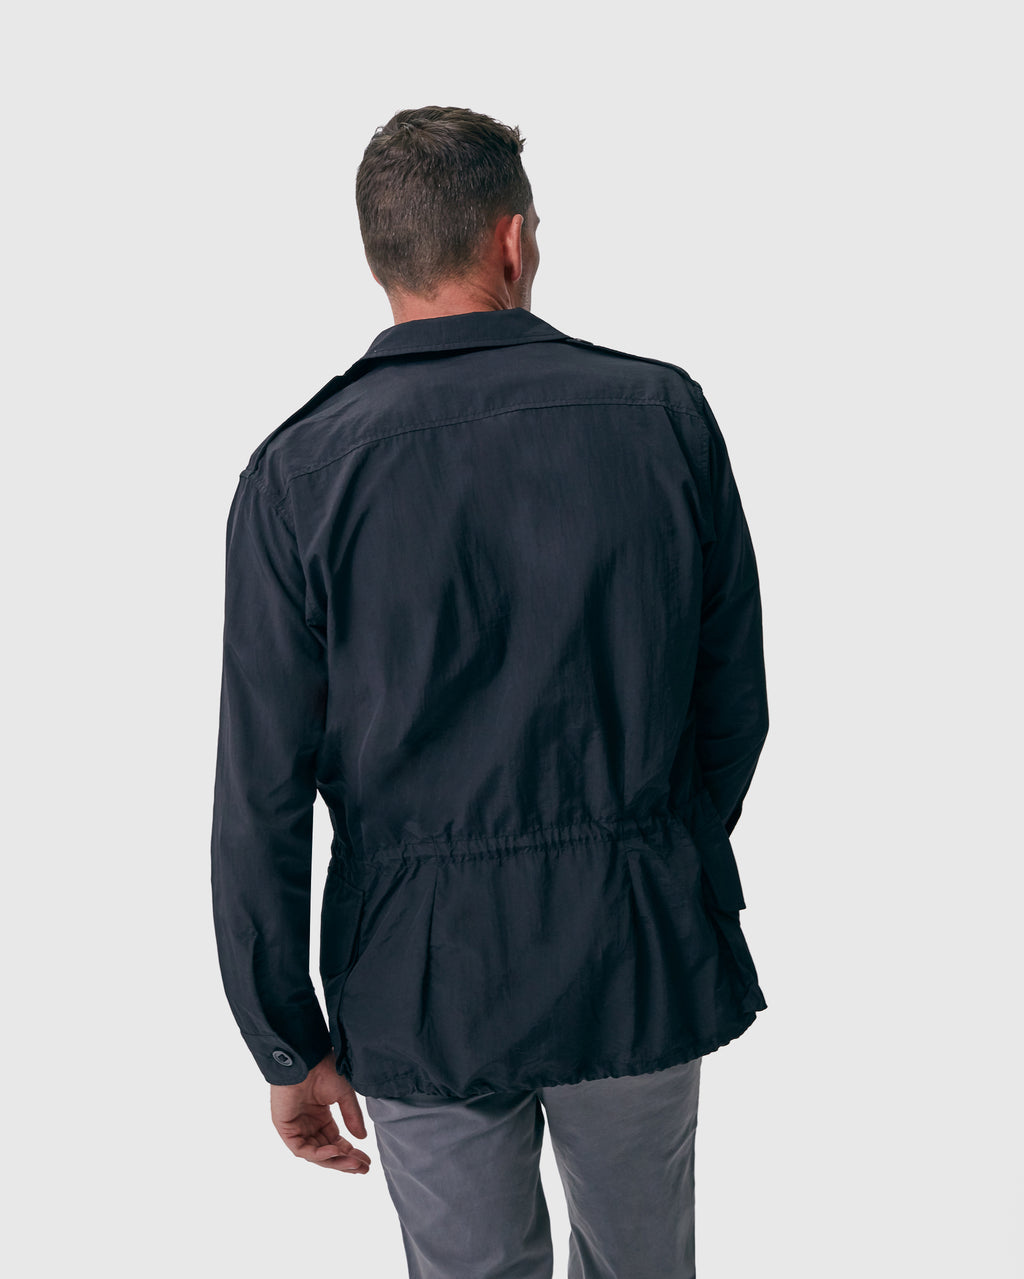 The Shore Jacket in Black